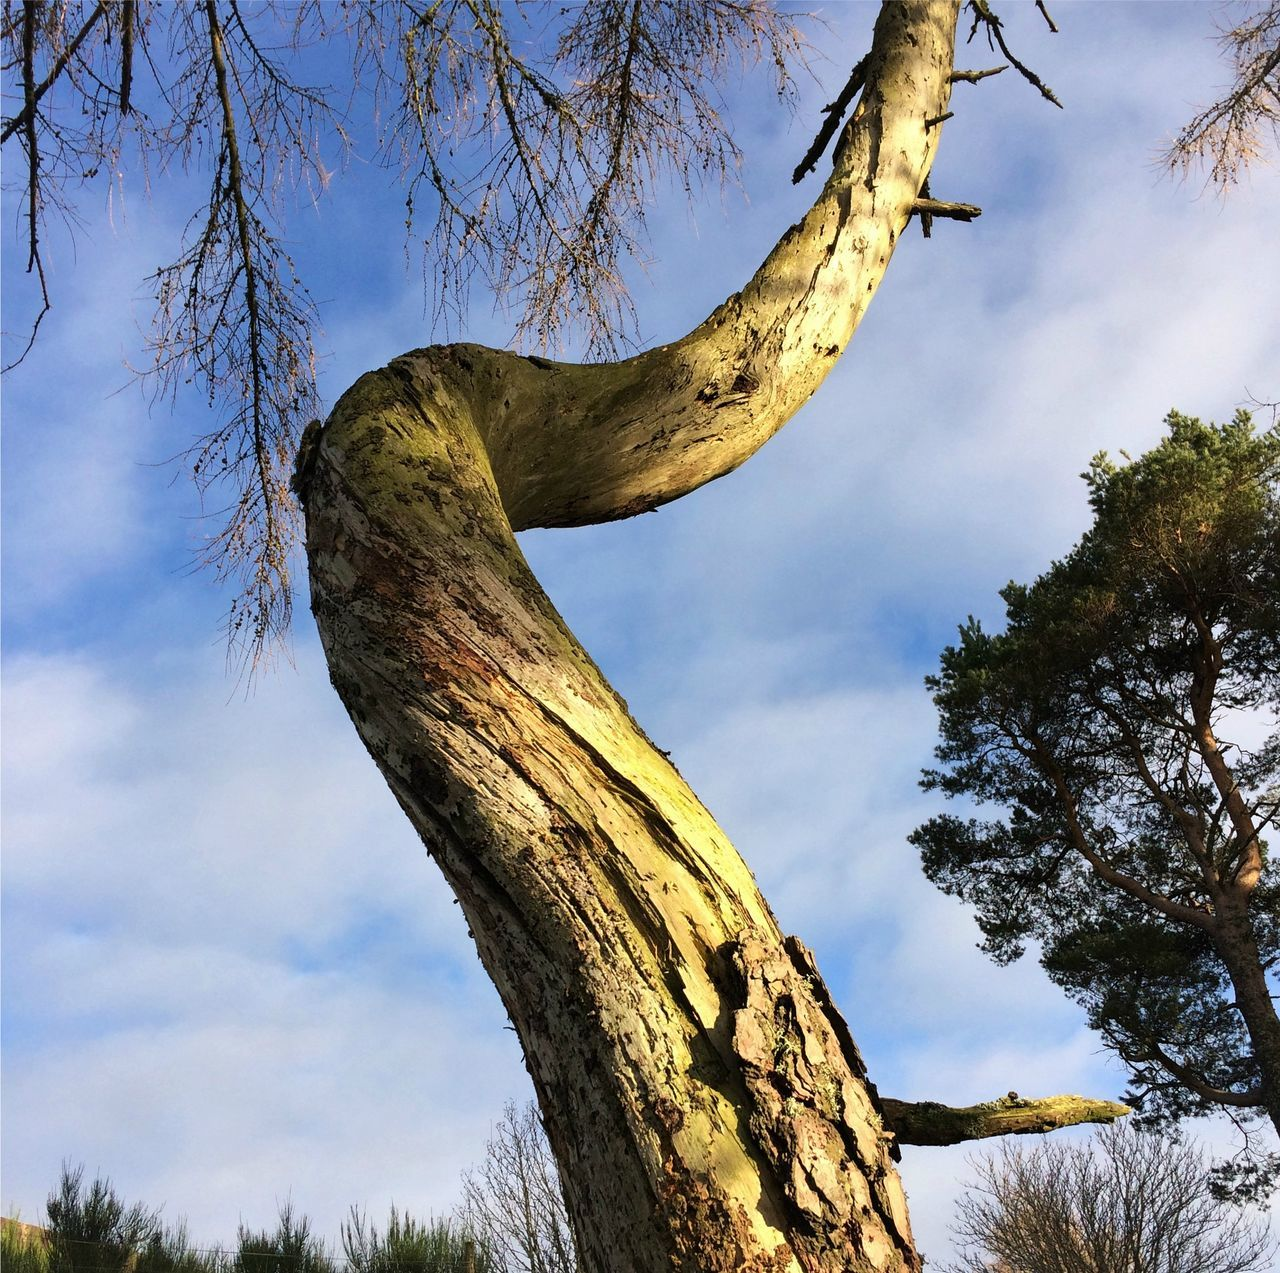 Branch Dead Tree Deadwood  Low Angle View Outdoors Sky Spiral Tree Tree Trunk Tree Trunk Twisted Tree TwistedWood Warped